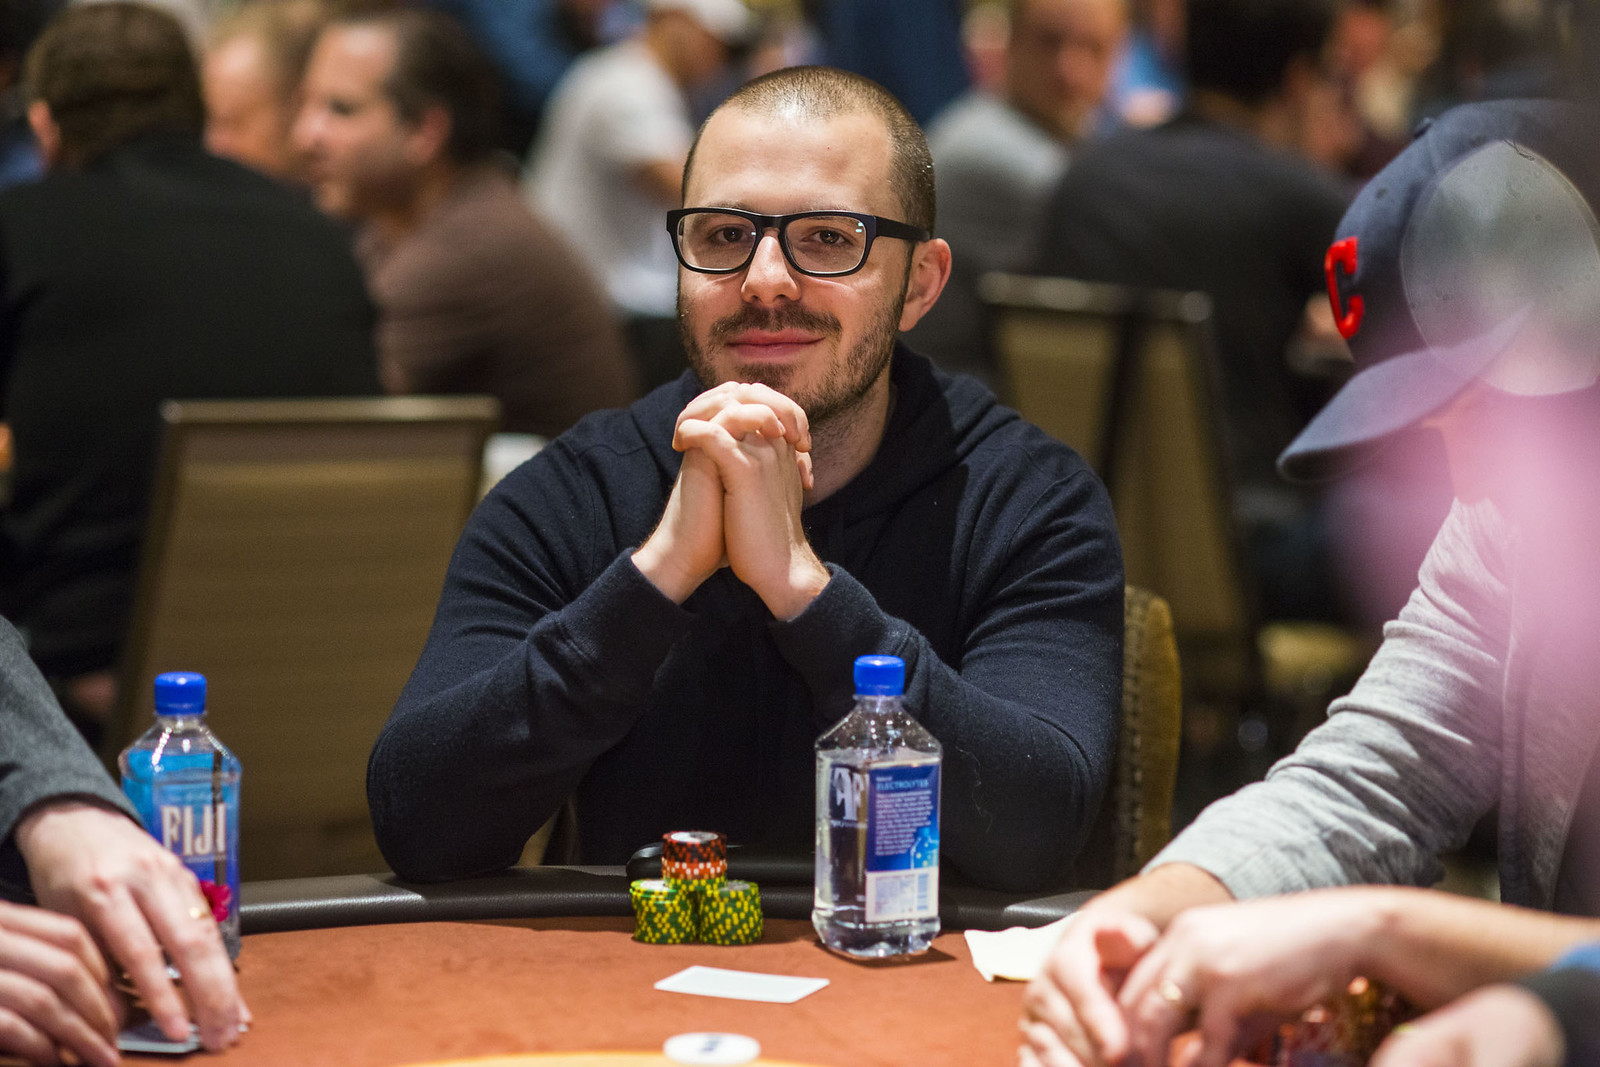 high roller tournament pro Dan Smith